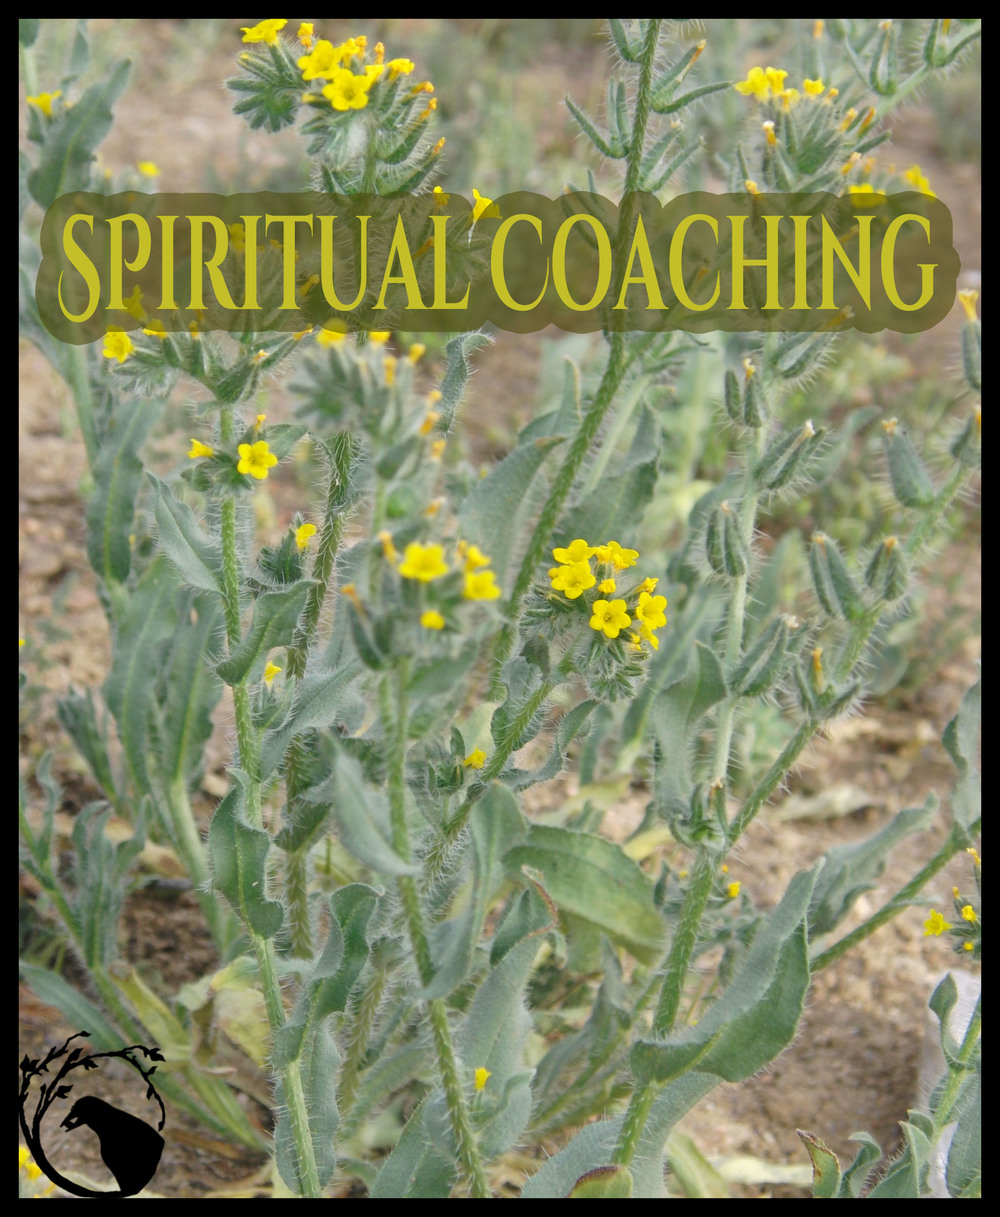 spiritual coaching yellow flowers esoteric occult spirits guidance teaching learn to mentor empowerment courage